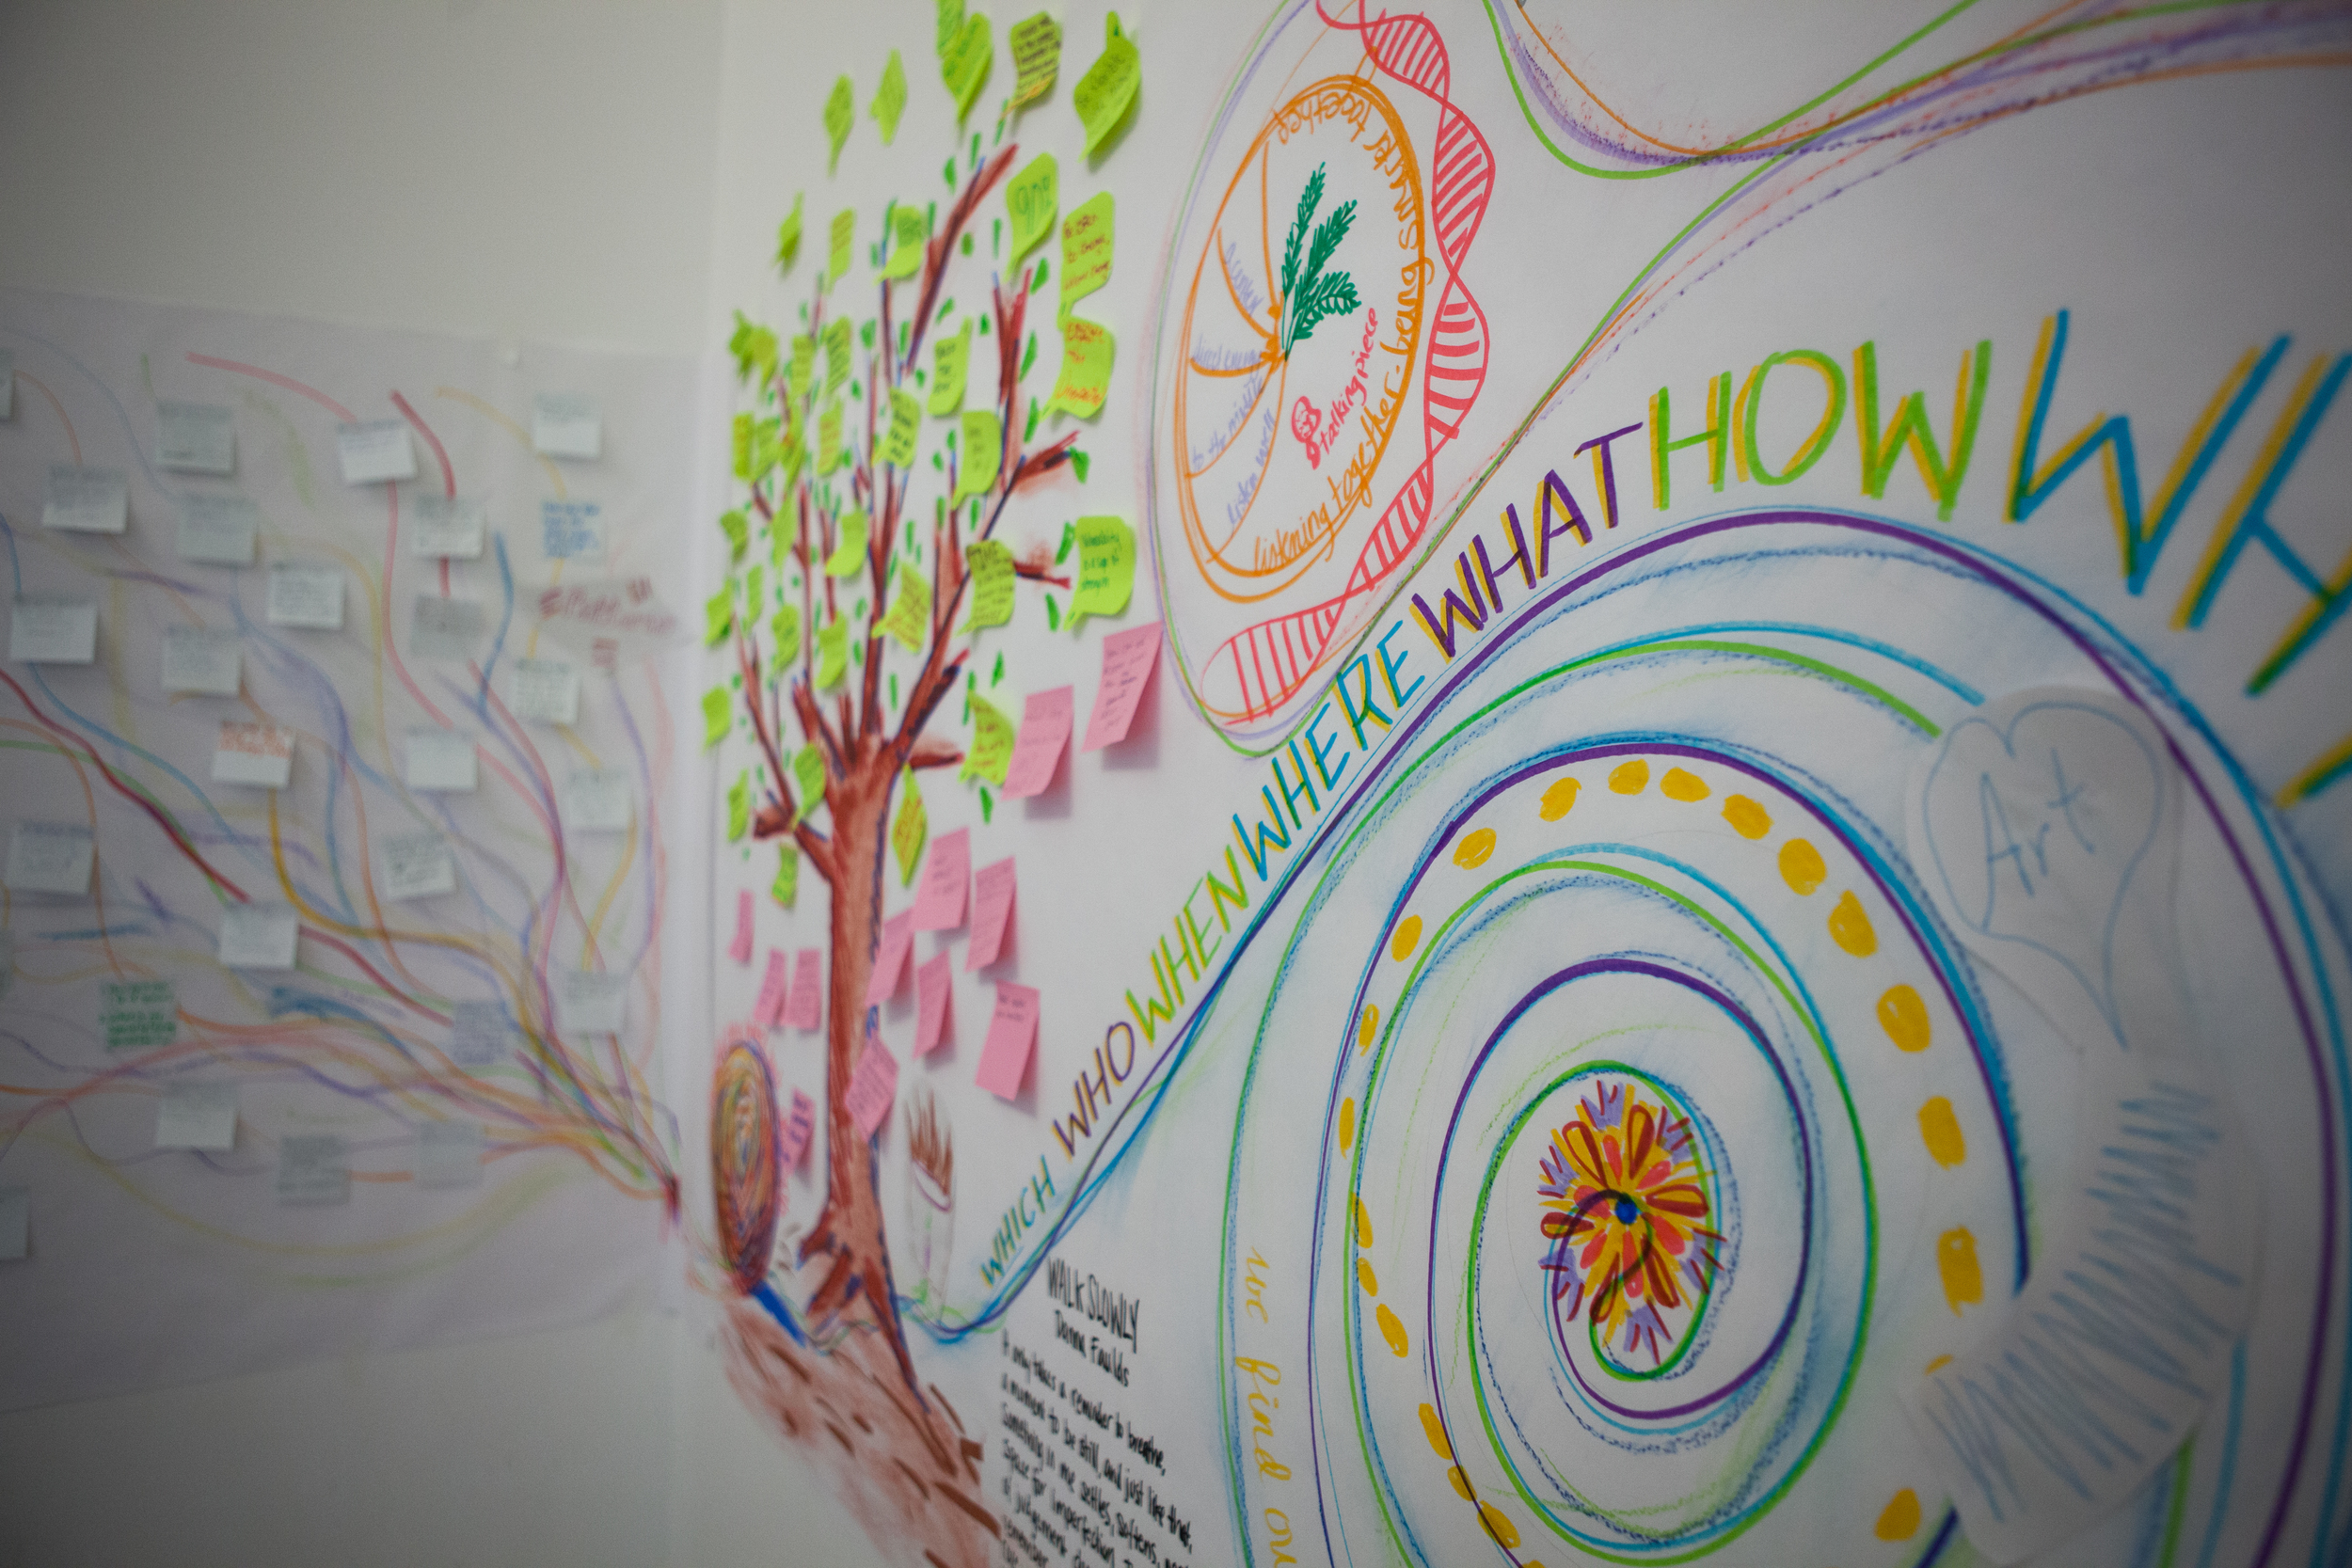 Harvest can take many forms. For this training we created a colorful and artistic interpretation of the work done as a group.